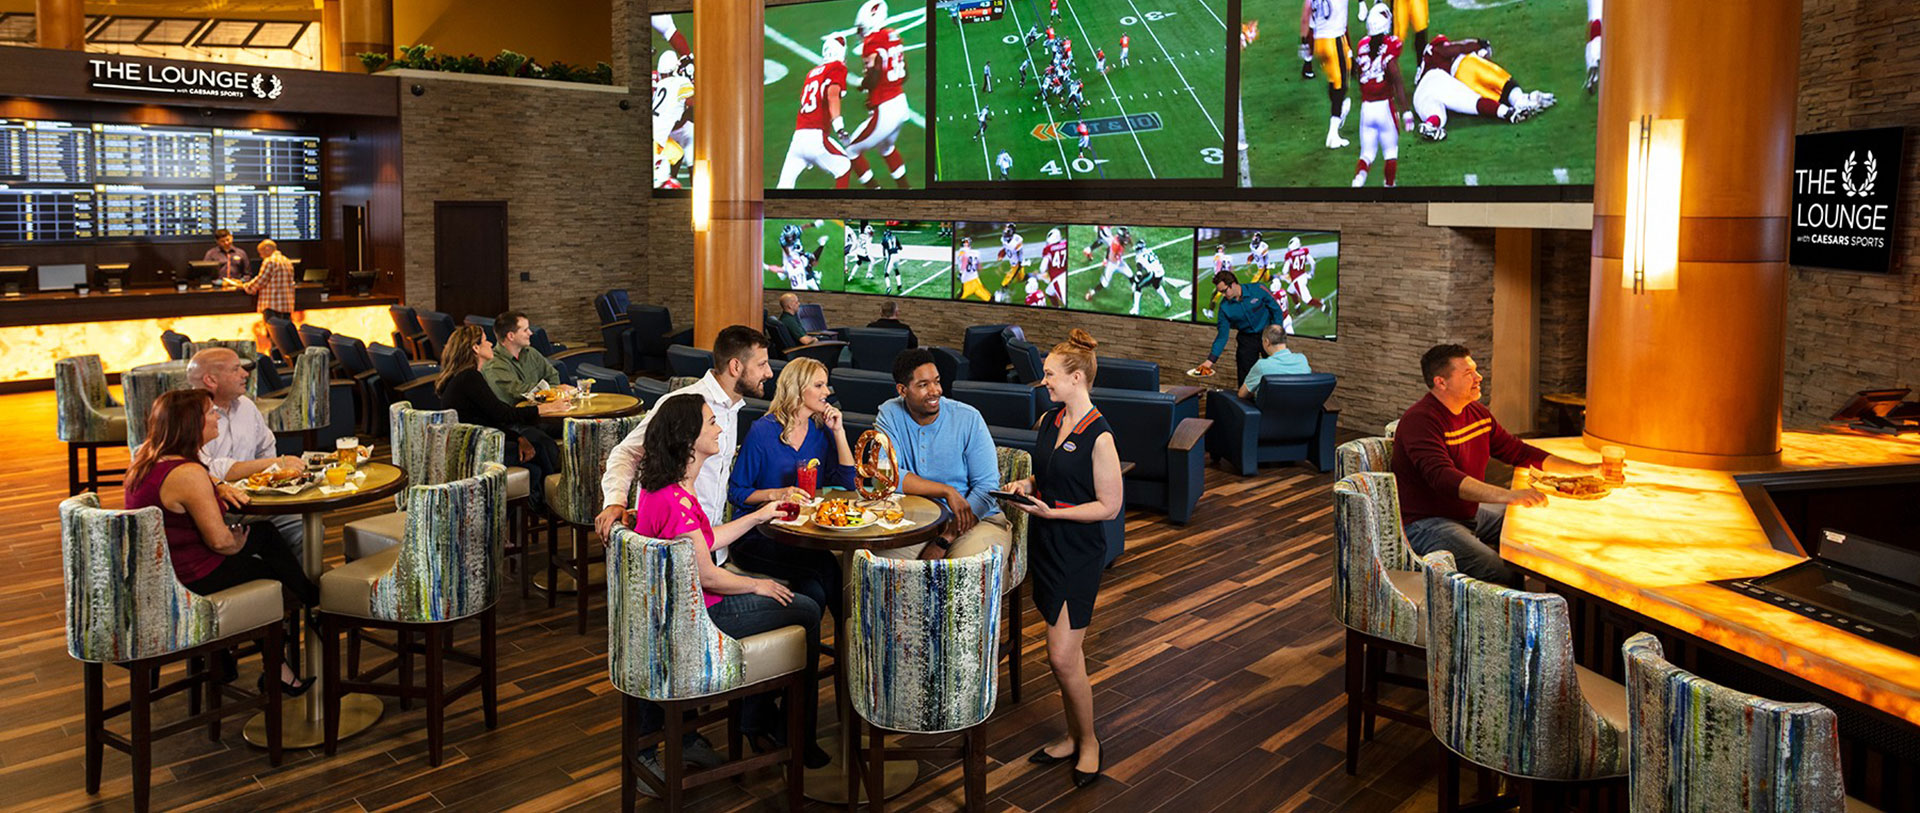 Q&A with Sports Book Director: JustinArnett